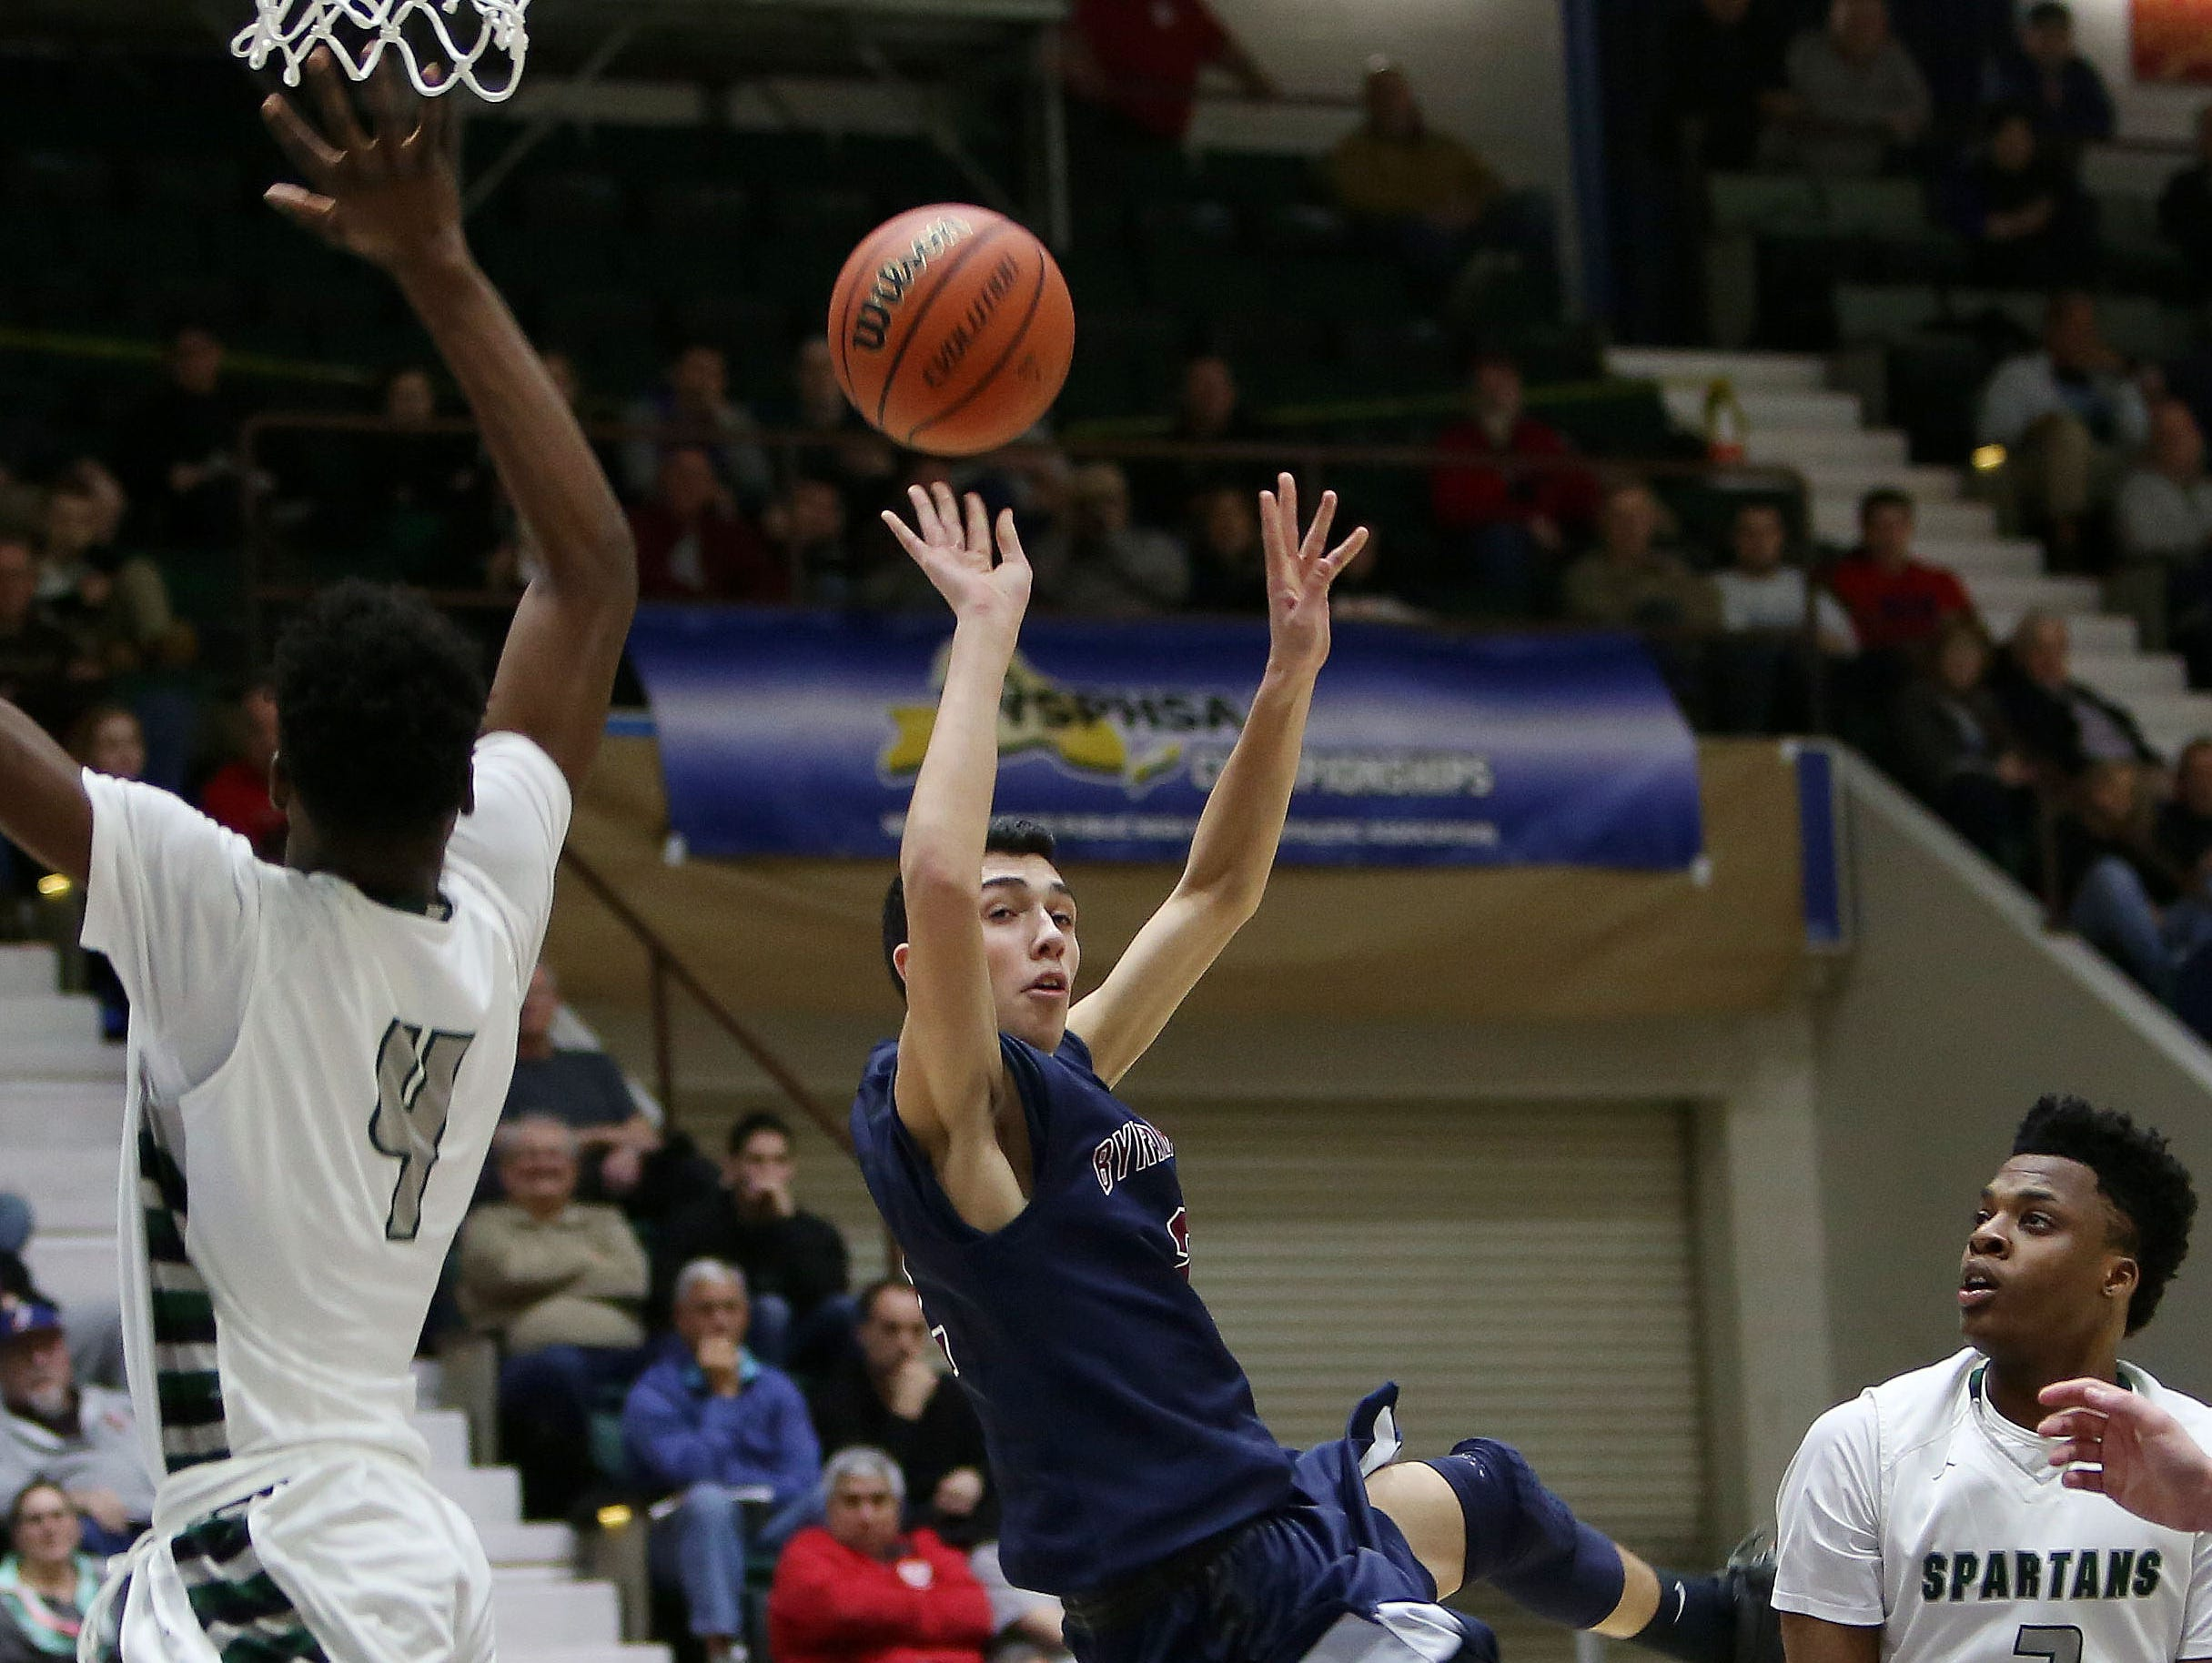 Byram Hills' Skylar Sinon (2) has his path to the basket blocked by a host of Elmont defenders during the New York State boys basketball Class A semifinal game at the Glens Falls Civic Center March 12, 2016. Element won the game 50-48.